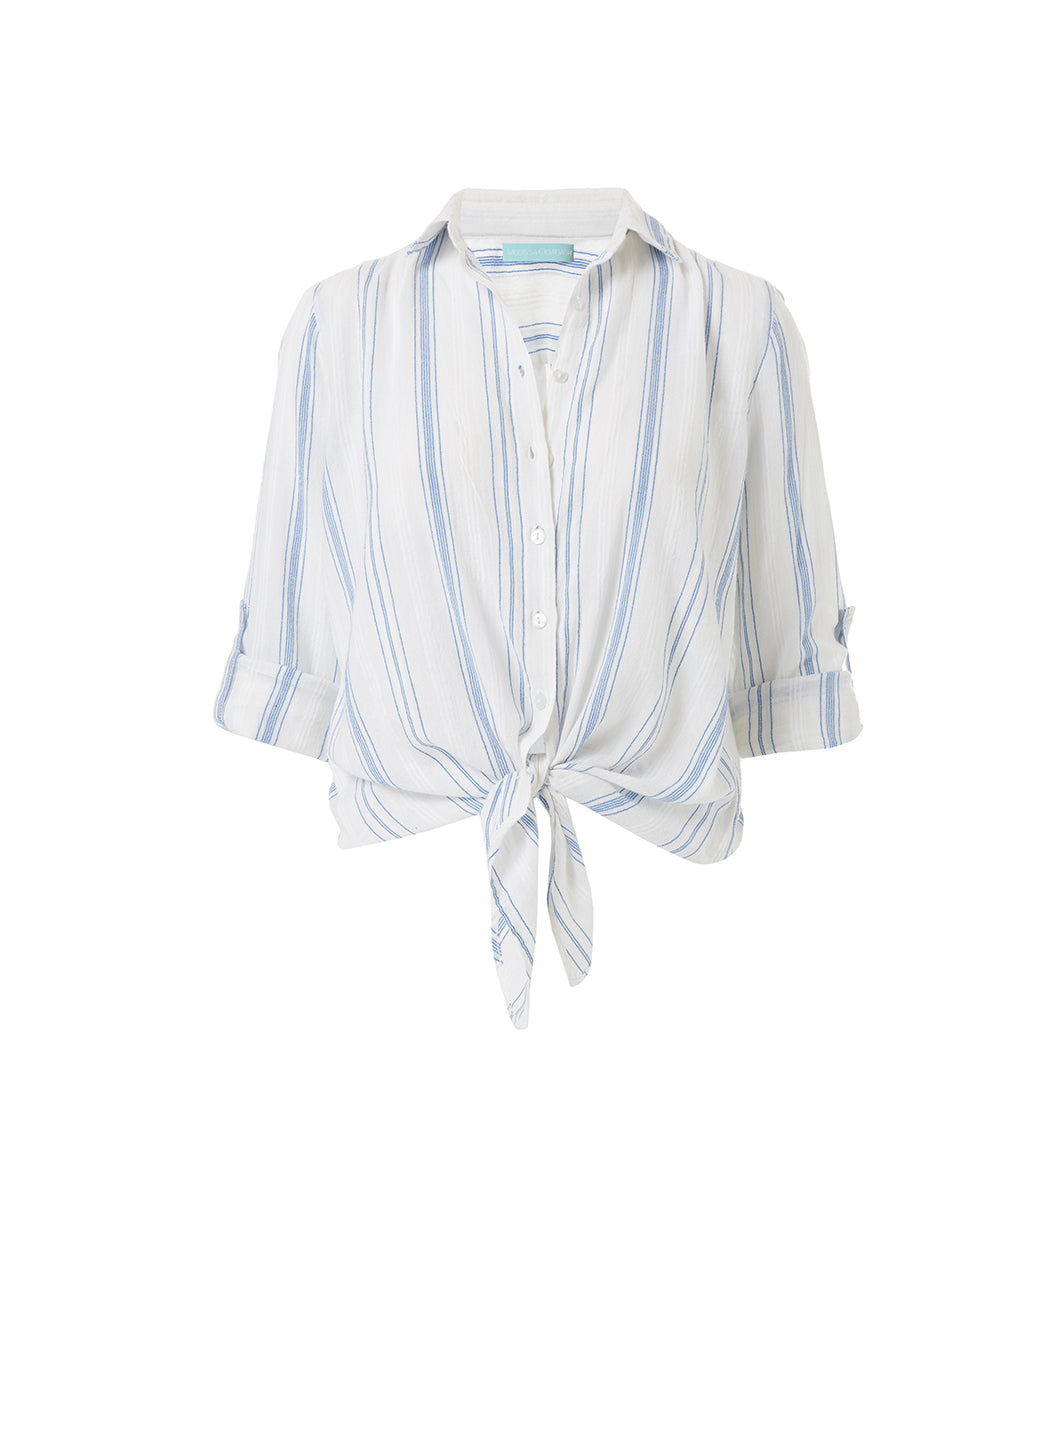 Inny Blue Stripe Cropped Shirt - Melissa Odabash Beachwear